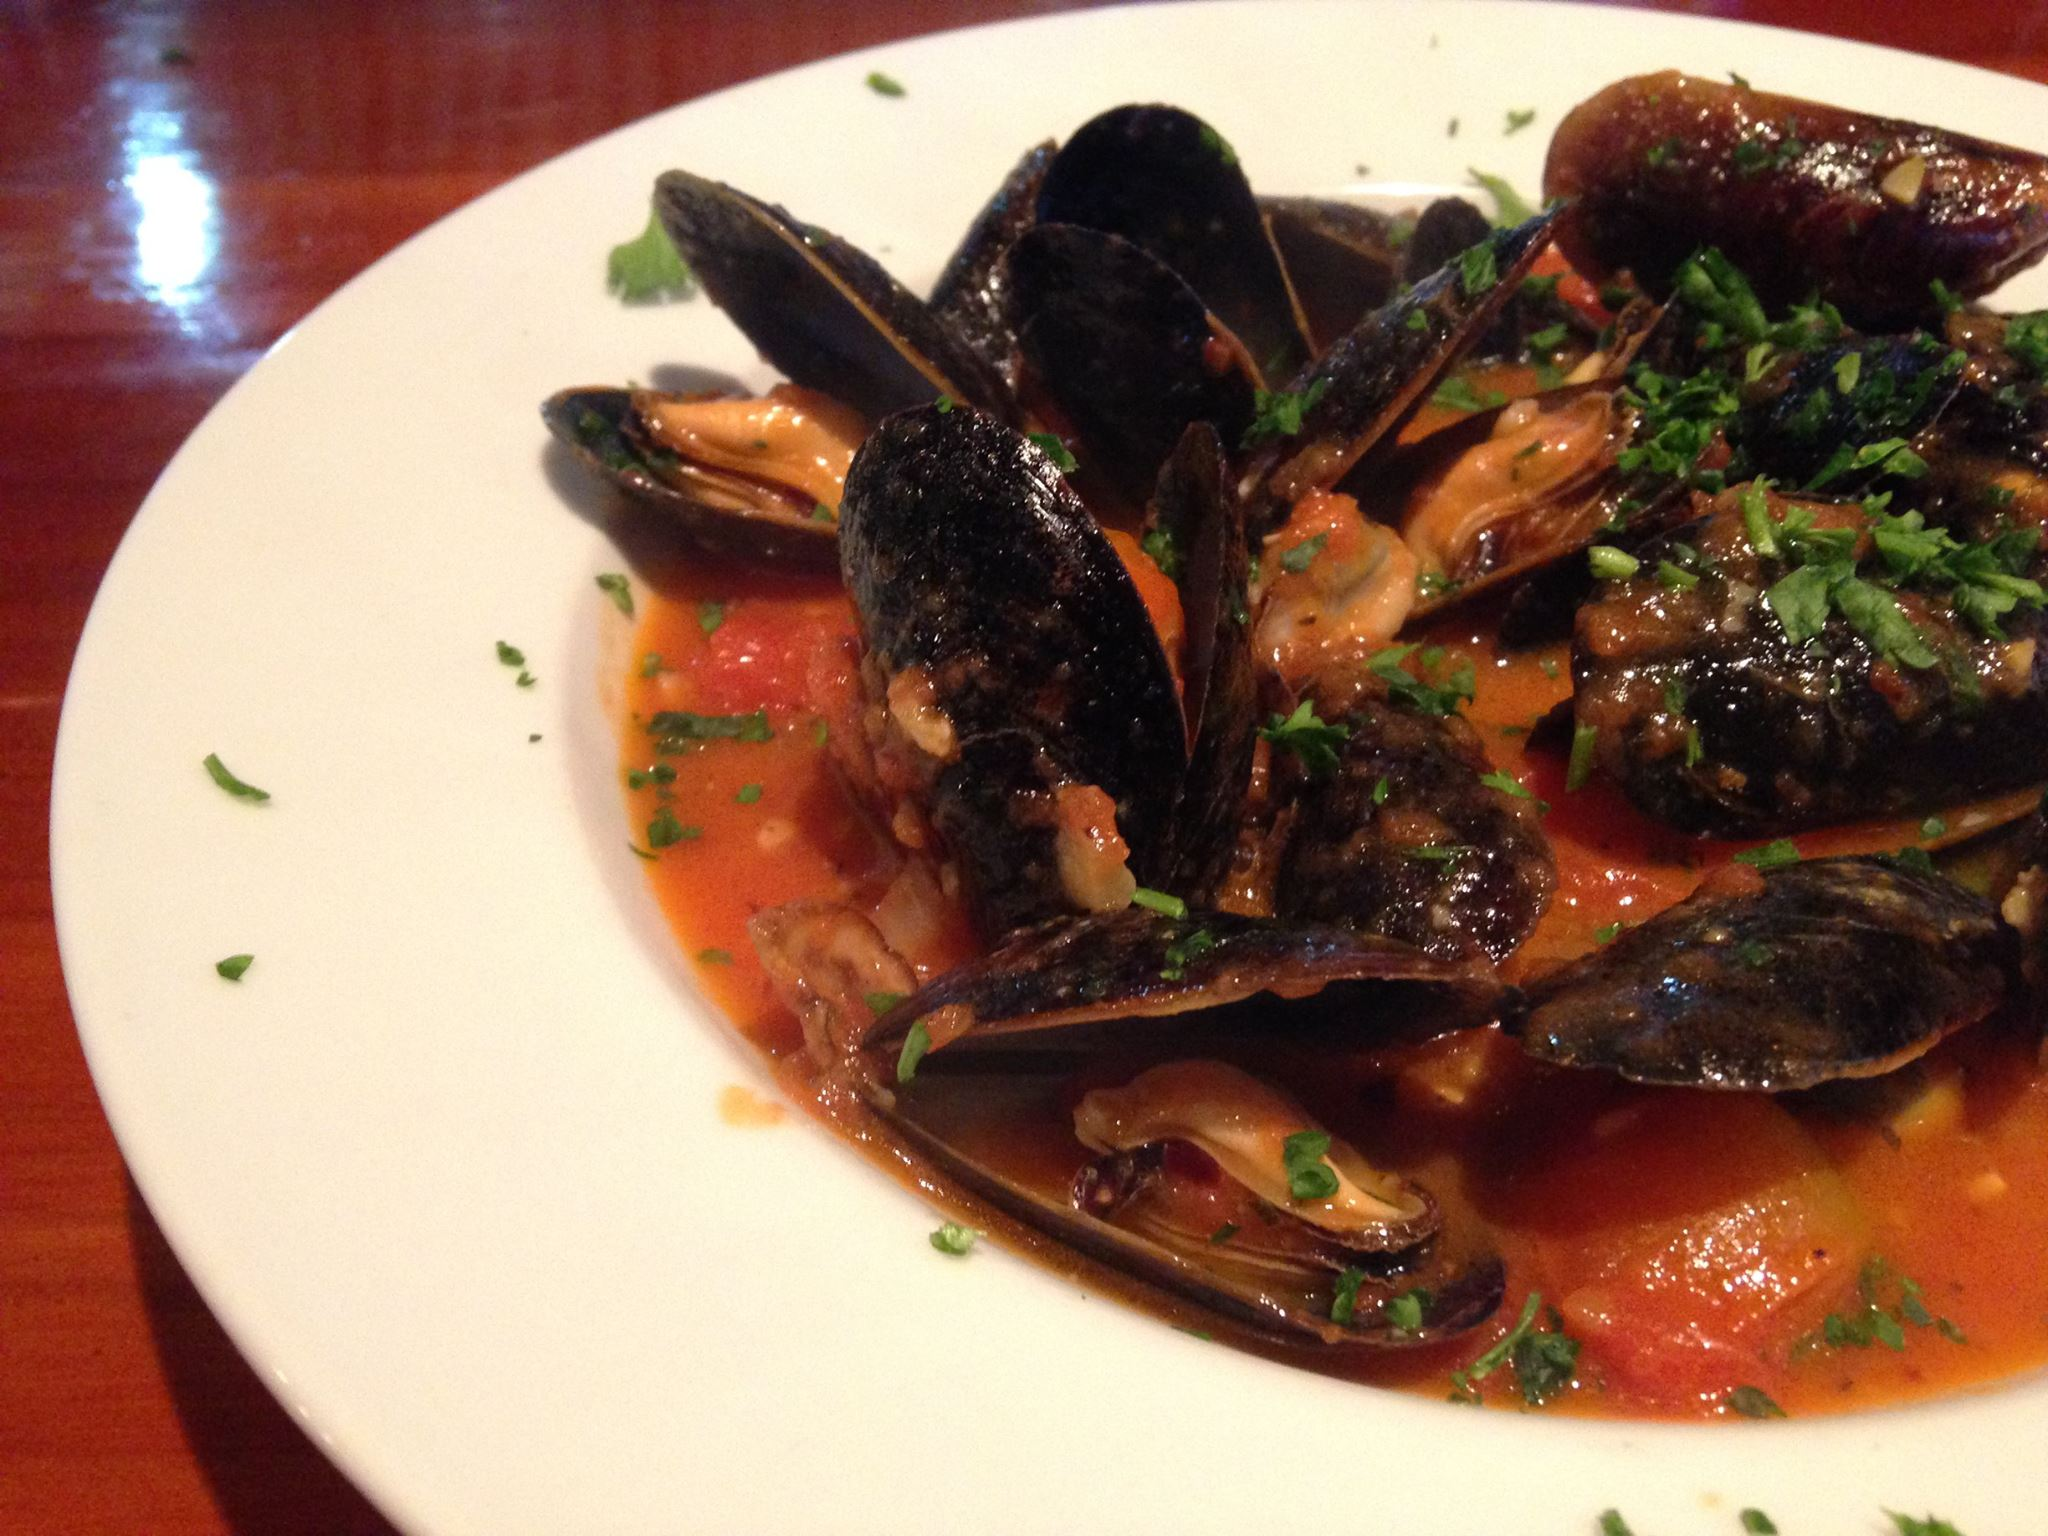 Mussels all tarantina. Mussels in marinara sauce